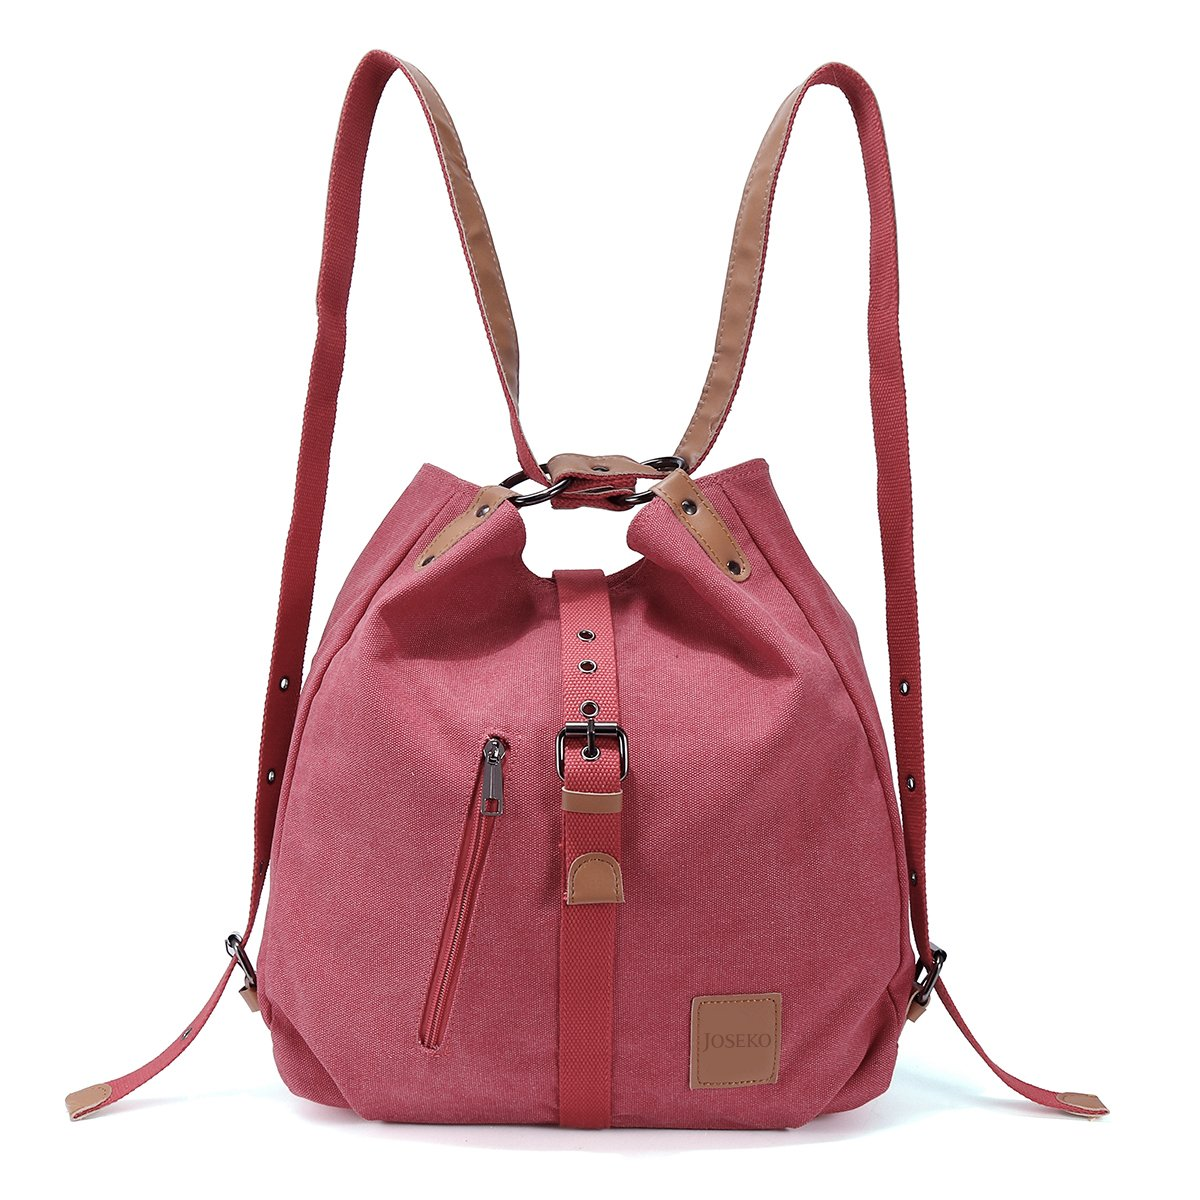 Multifunctional Canvas Bag, JOSEKO Women Convertible Backpack Purse Ladies Shoulder Bag Casual Handbag TEZOOUSRnal155